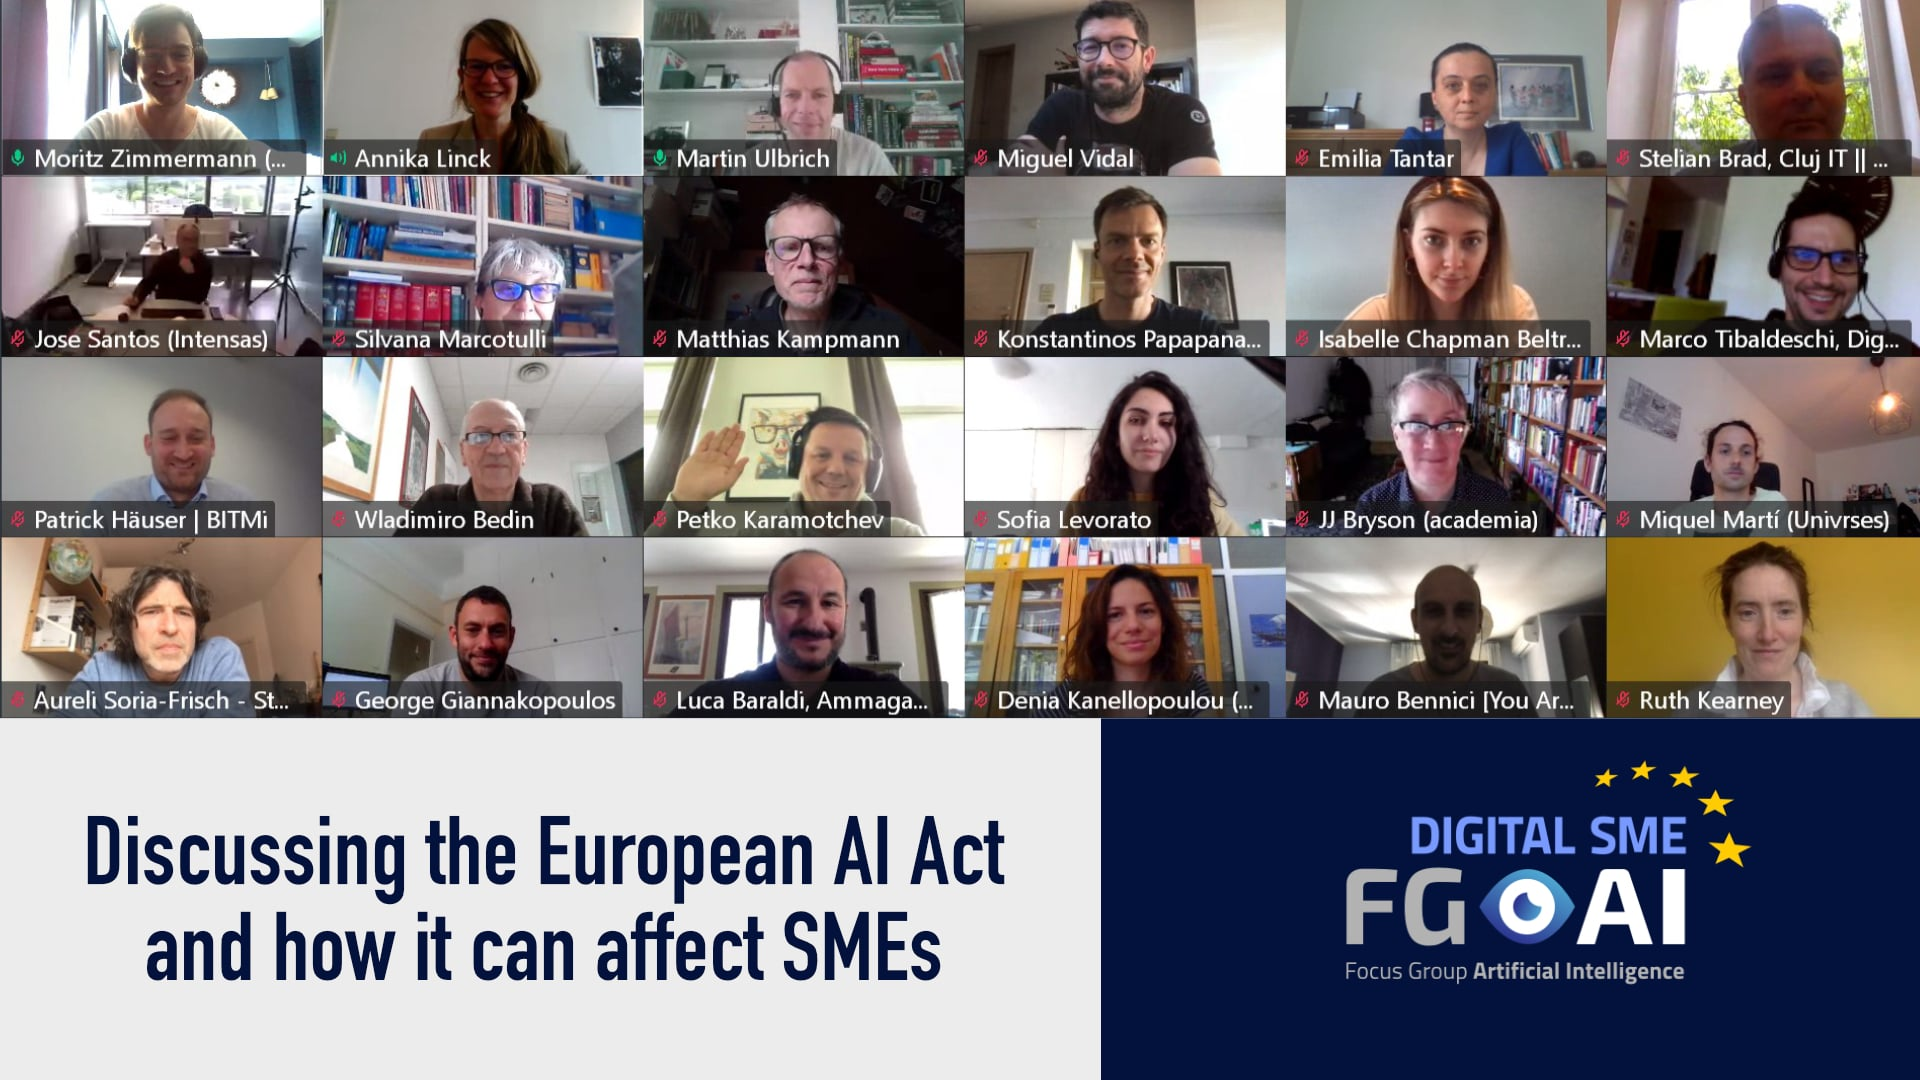 European AI Act – How will this regulation affect SMEs?